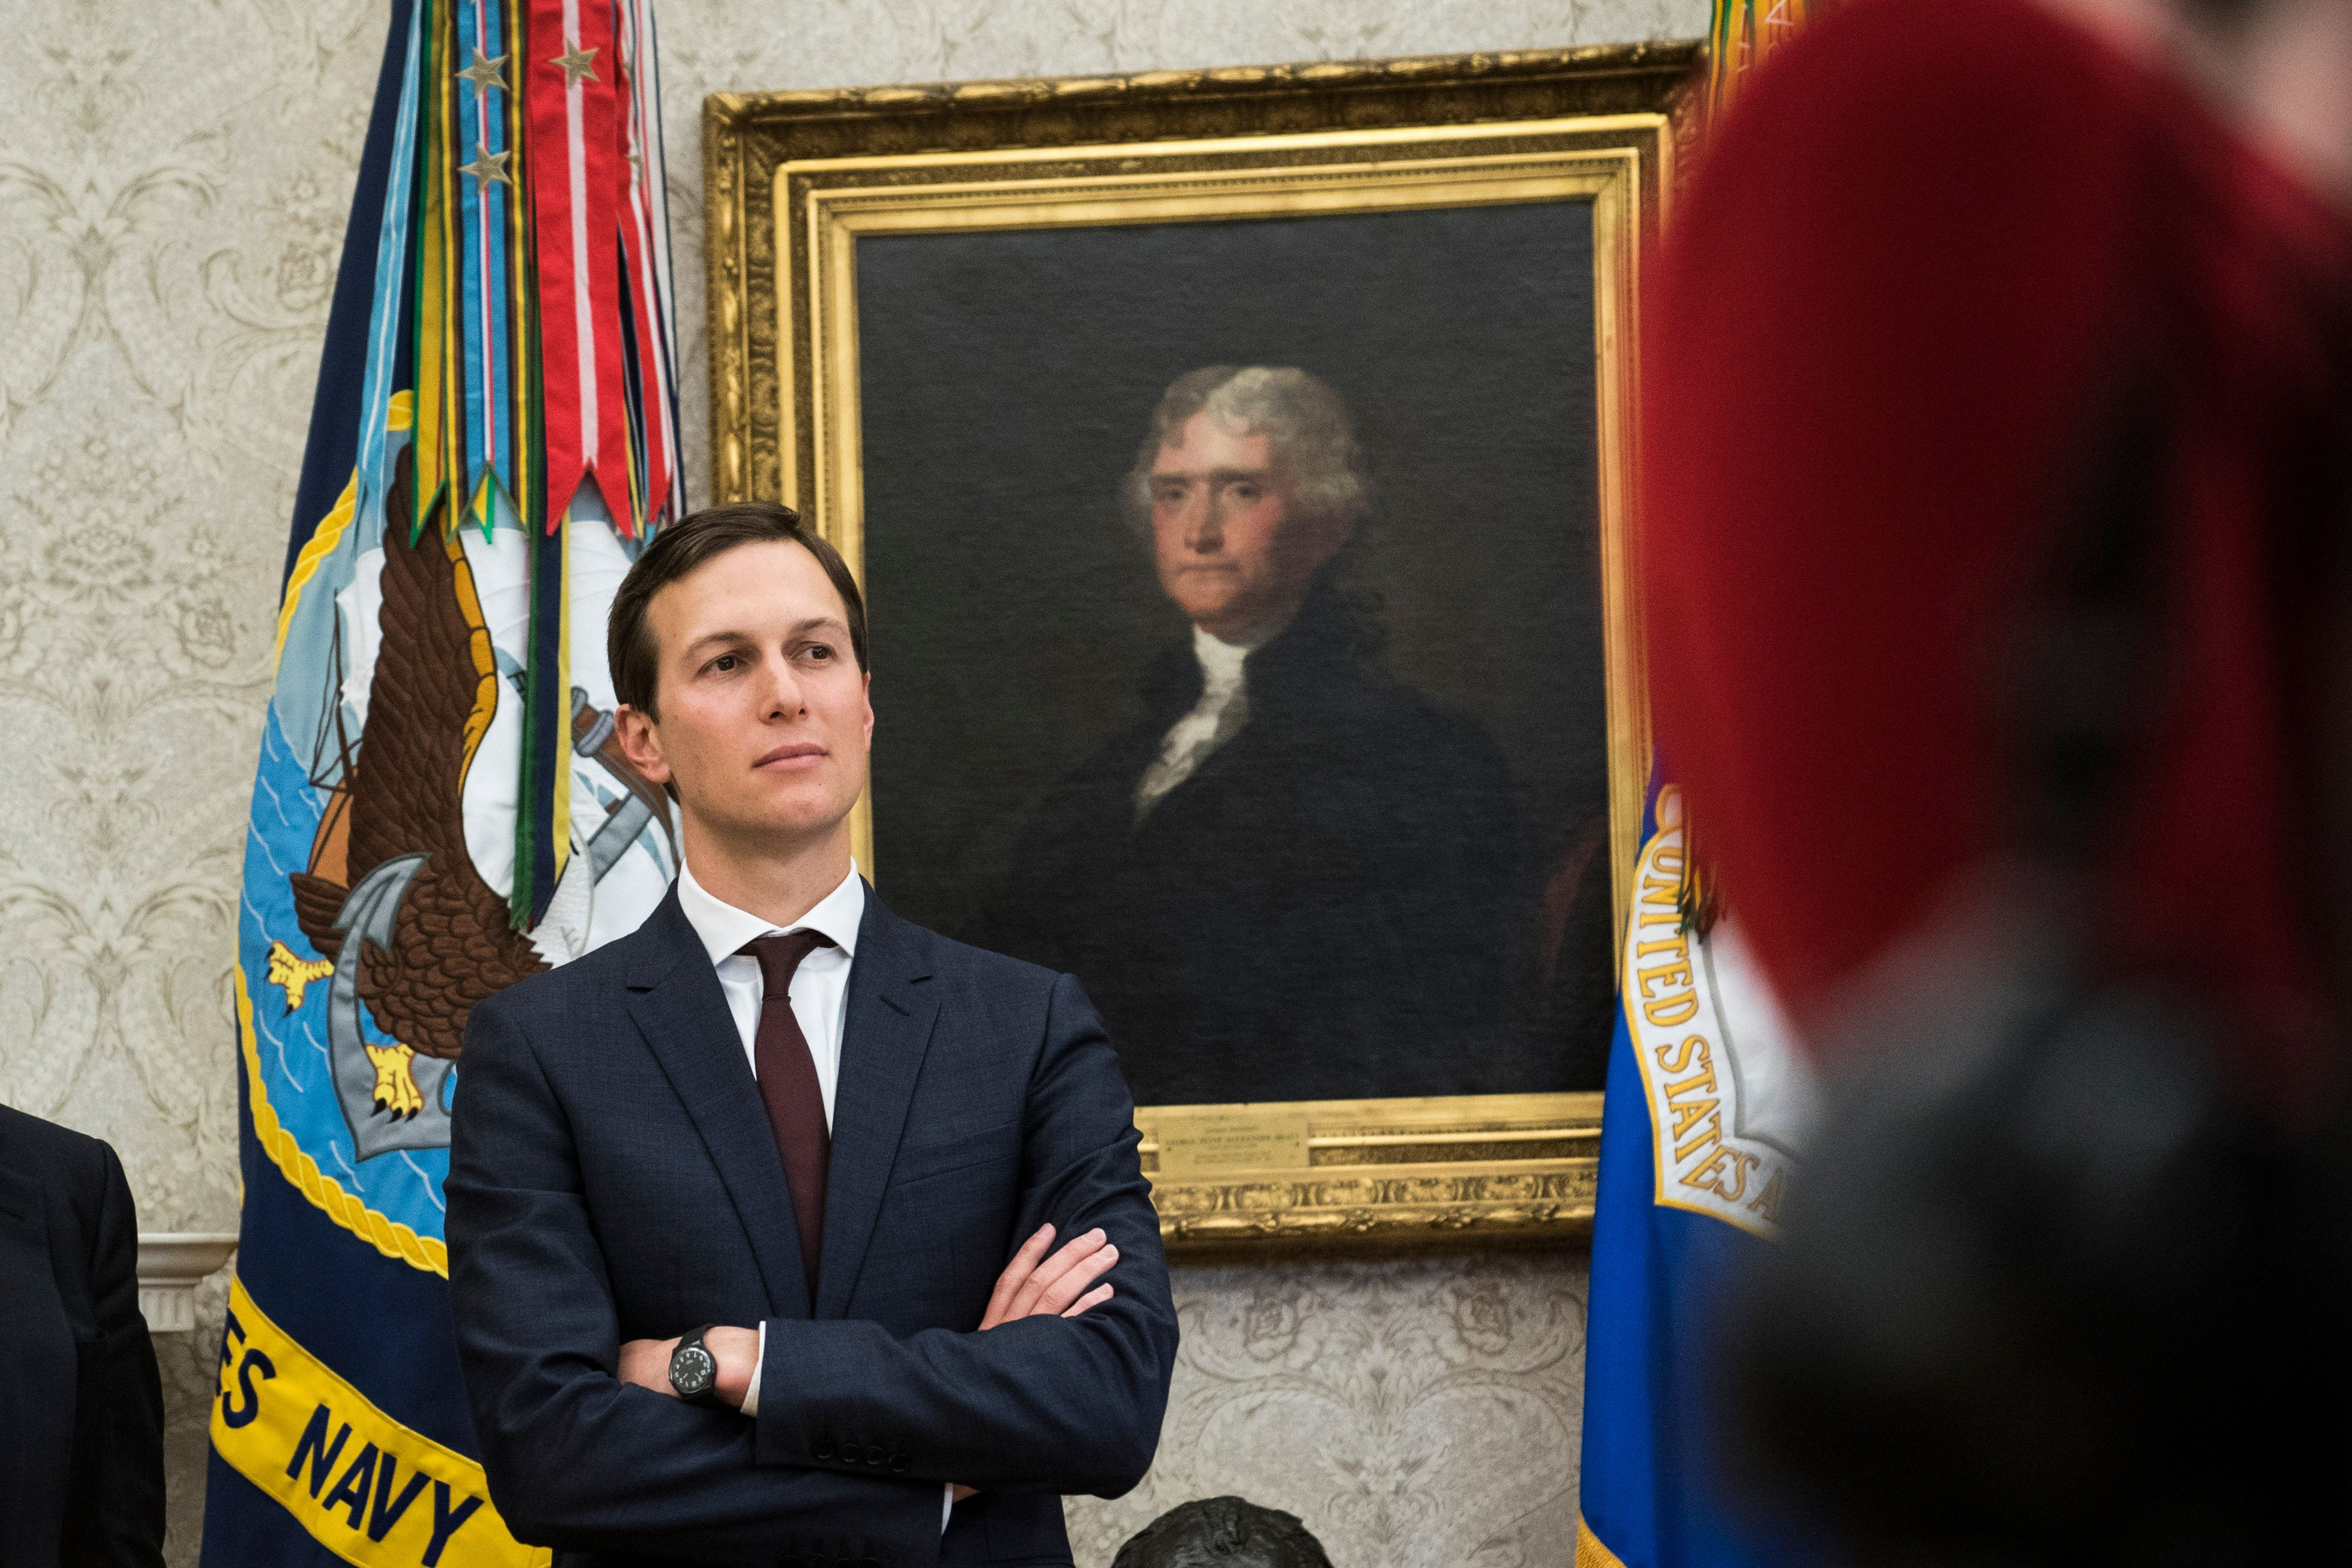 WASHINGTON, DC - JANUARY 9: White House adviser Jared Kushner watches as President Donald Trump signs the 'Supporting our Veterans during their Transition from Uniformed Service to Civilian Life,'executive order in the Oval Office at the White House in Washington, DC on Tuesday, Jan. 09, 2018. (Photo by Jabin Botsford/The Washington Post via Getty Images)